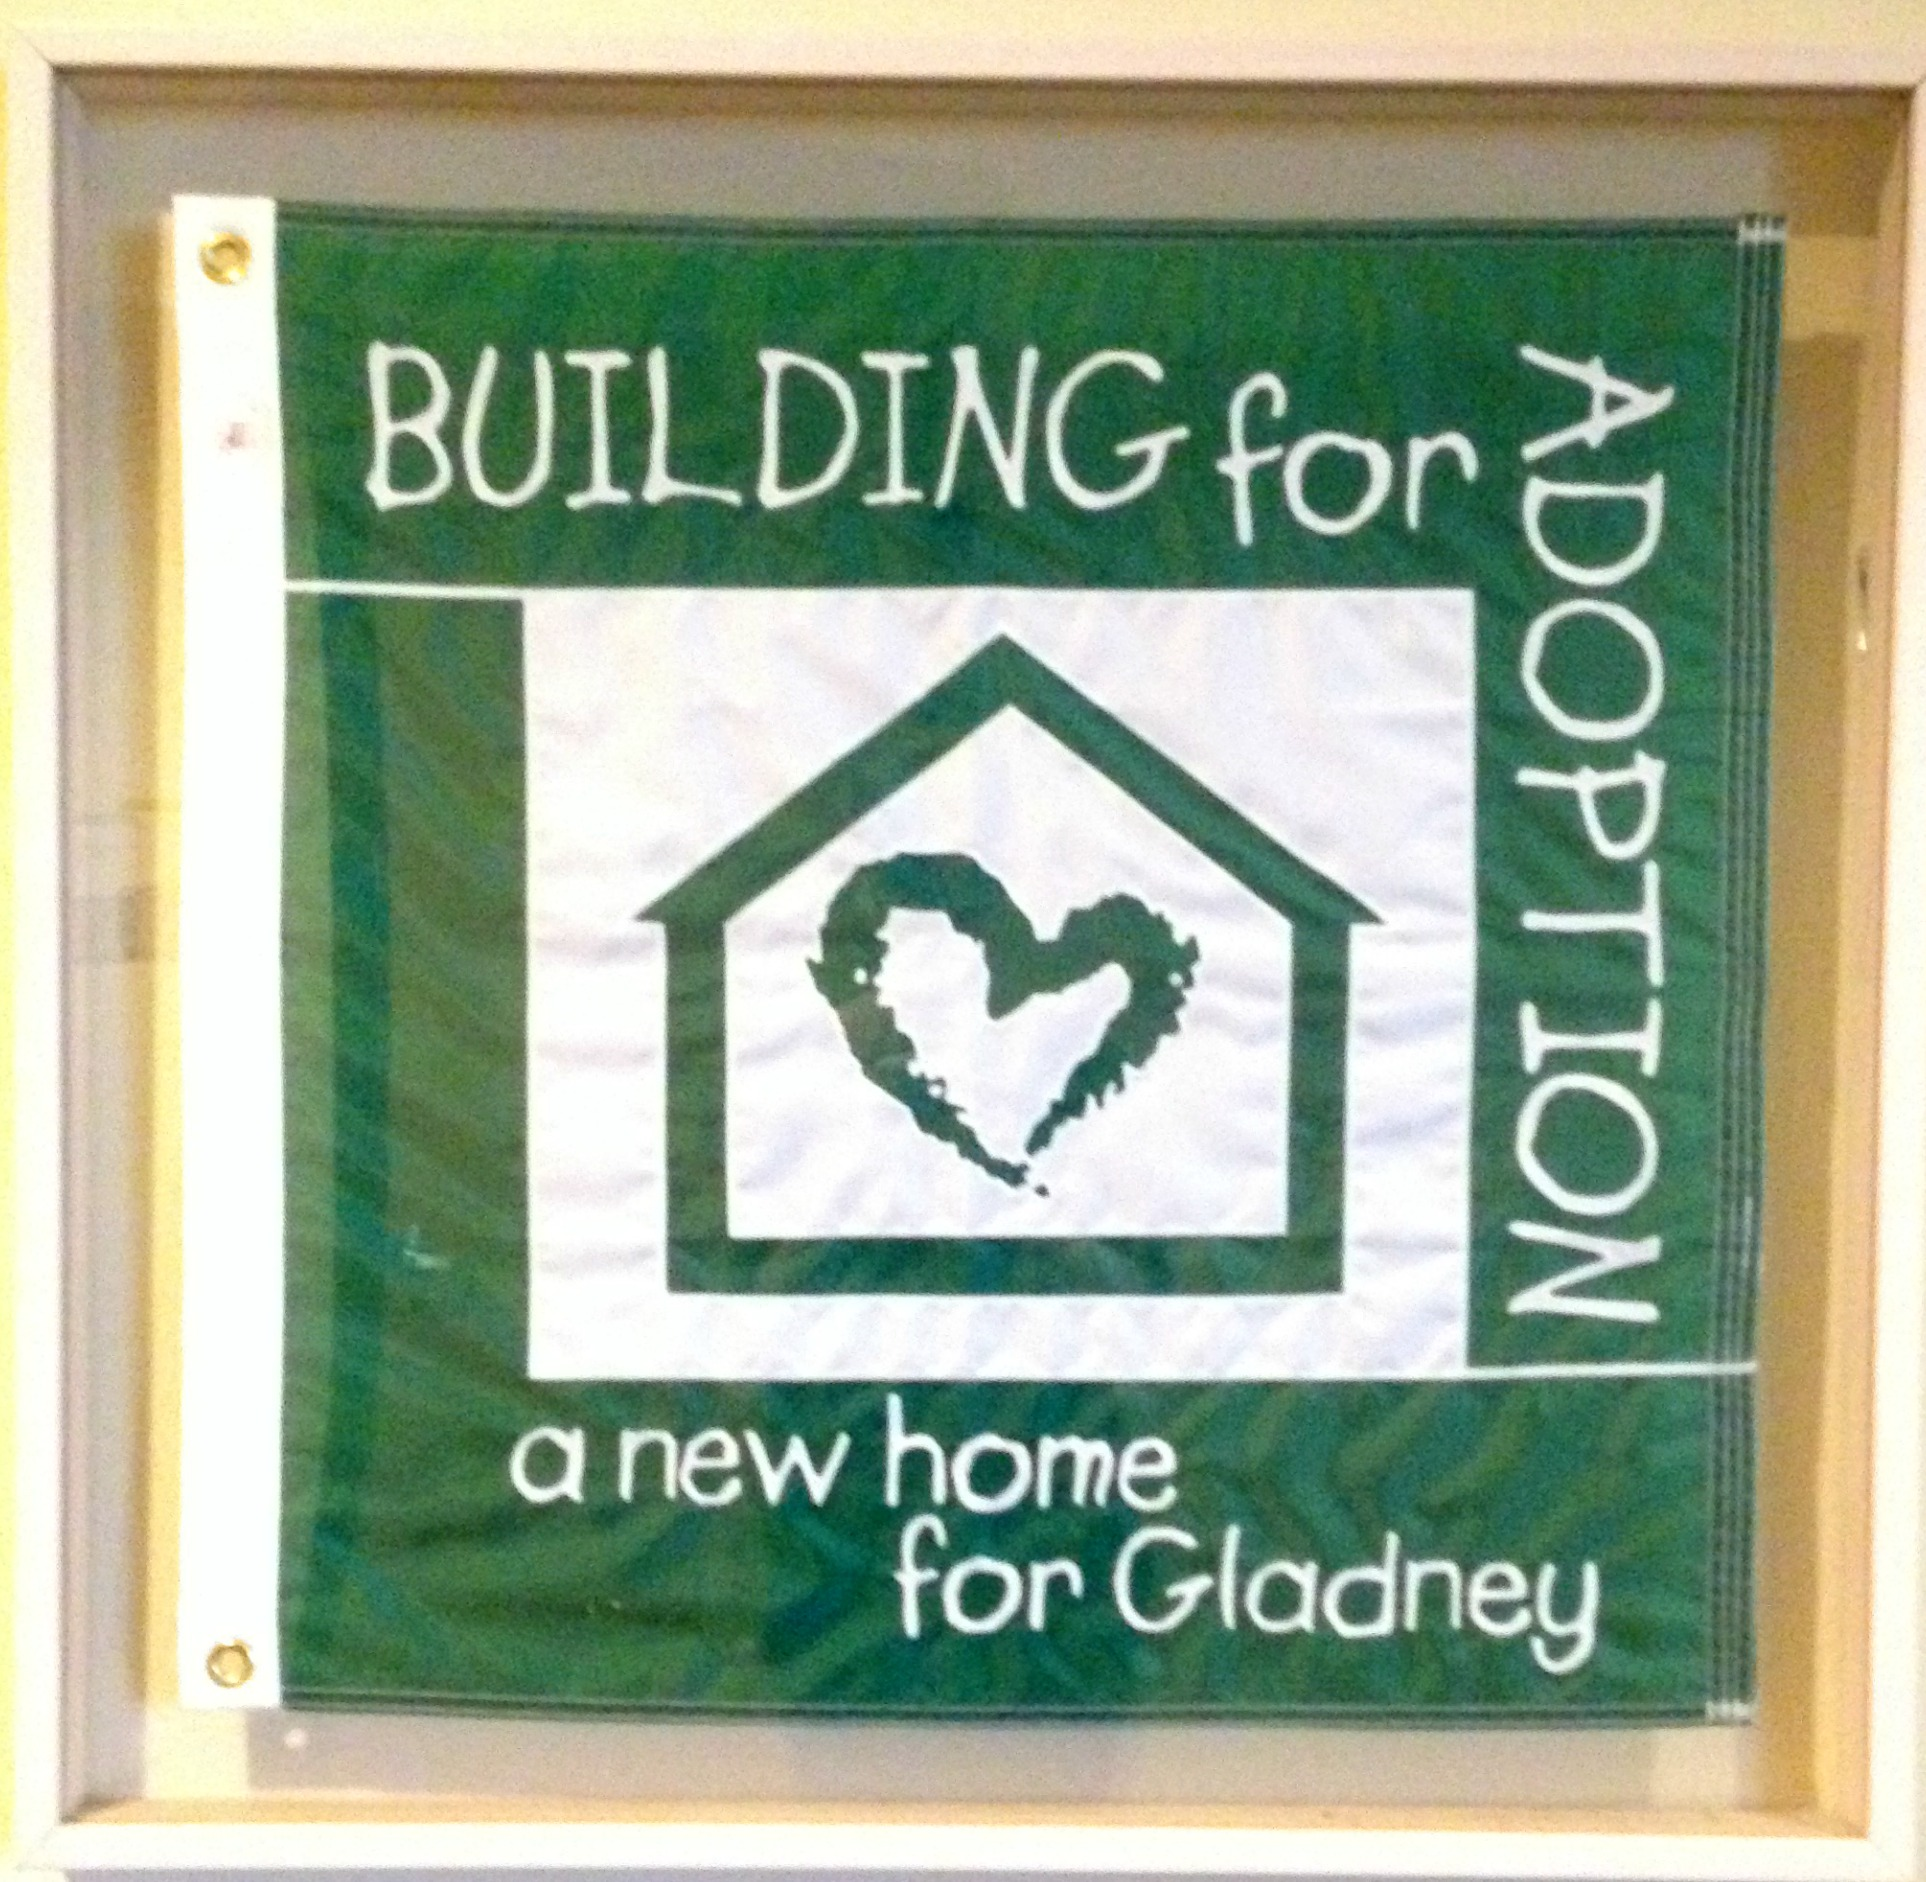 Gladney Adoption Facts